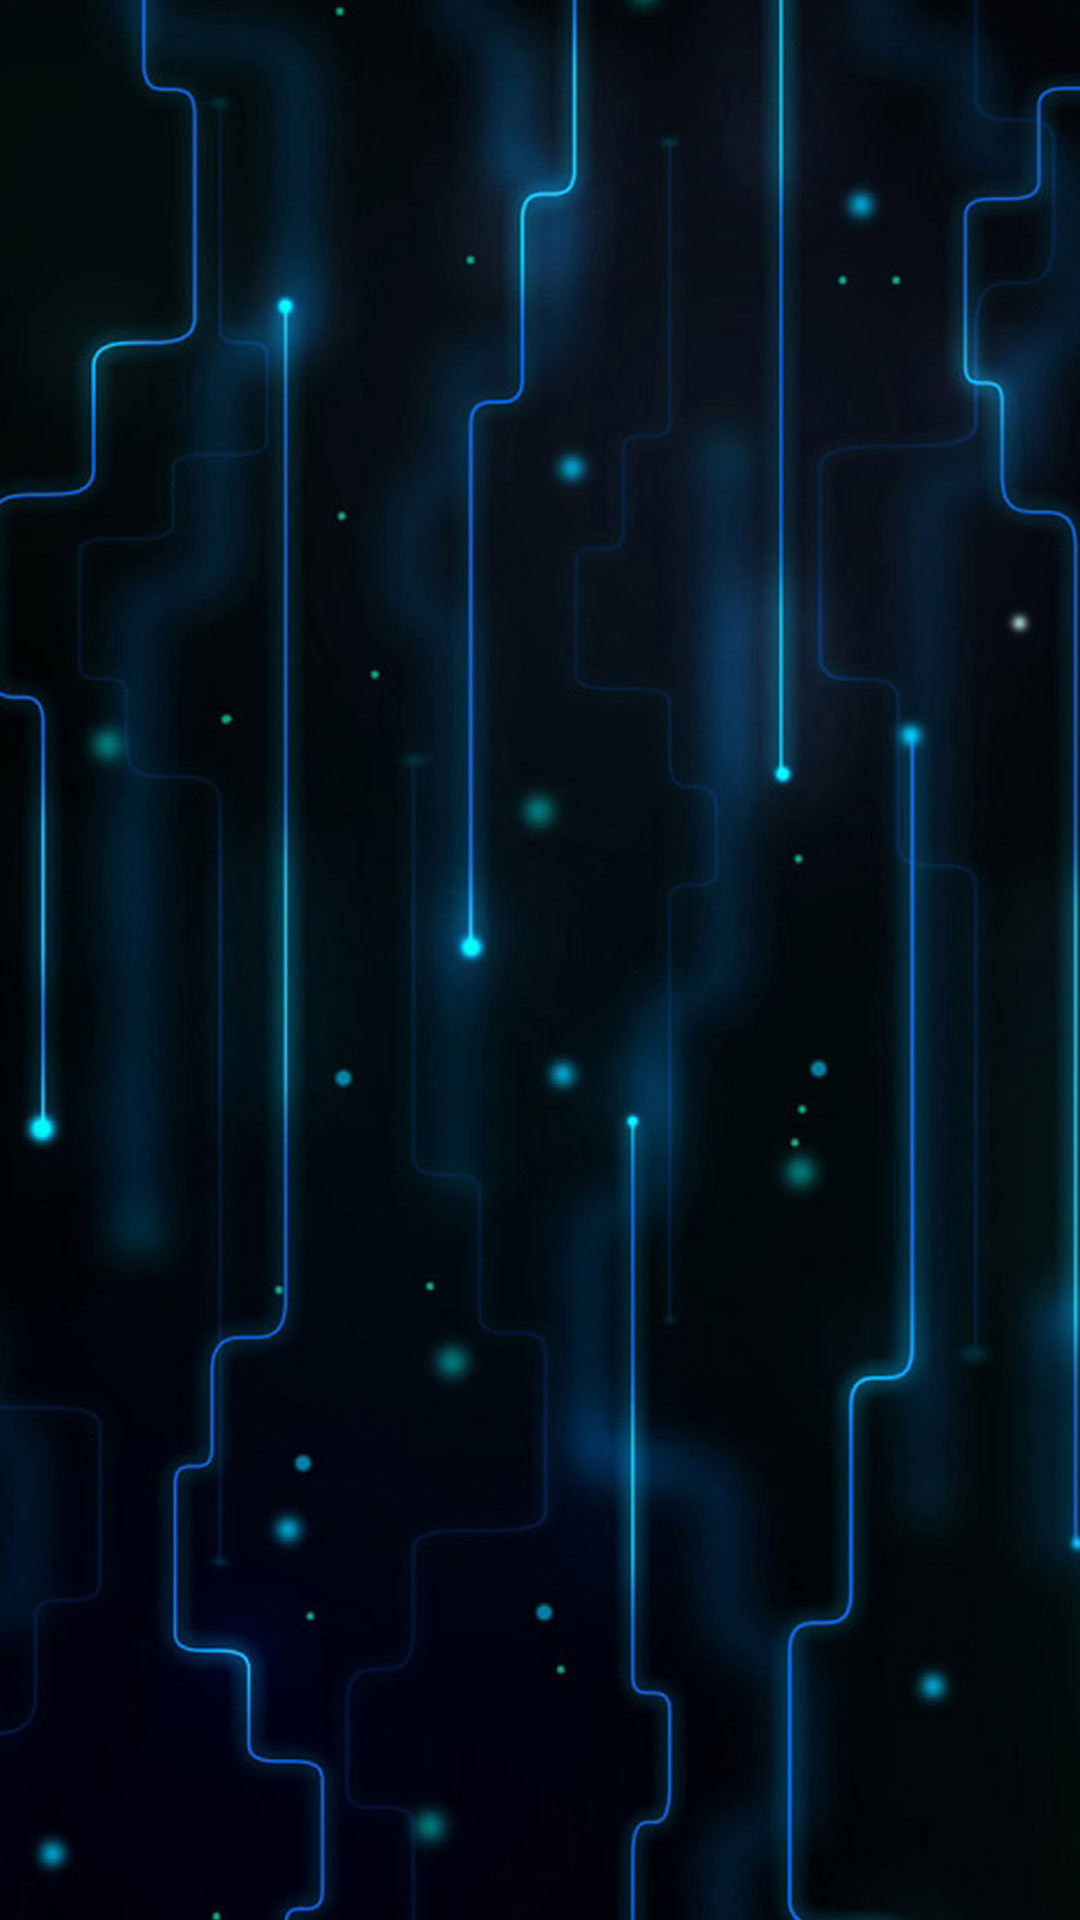 Free Download Abstract Htc One M8 Wallpaper 366 Htc One M8